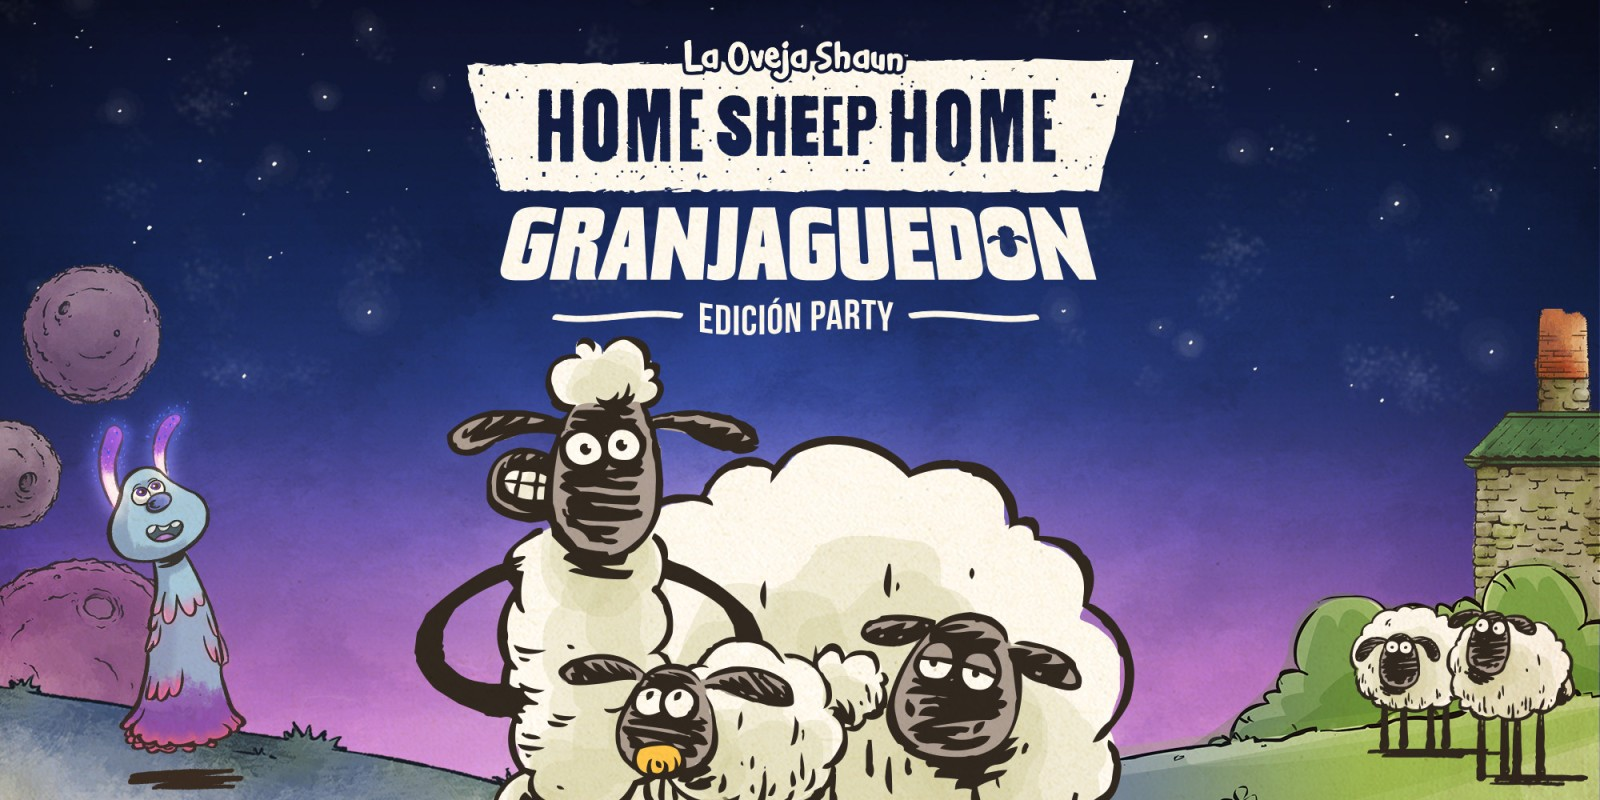 Home Sheep Home: Granjaguedon Edición Party